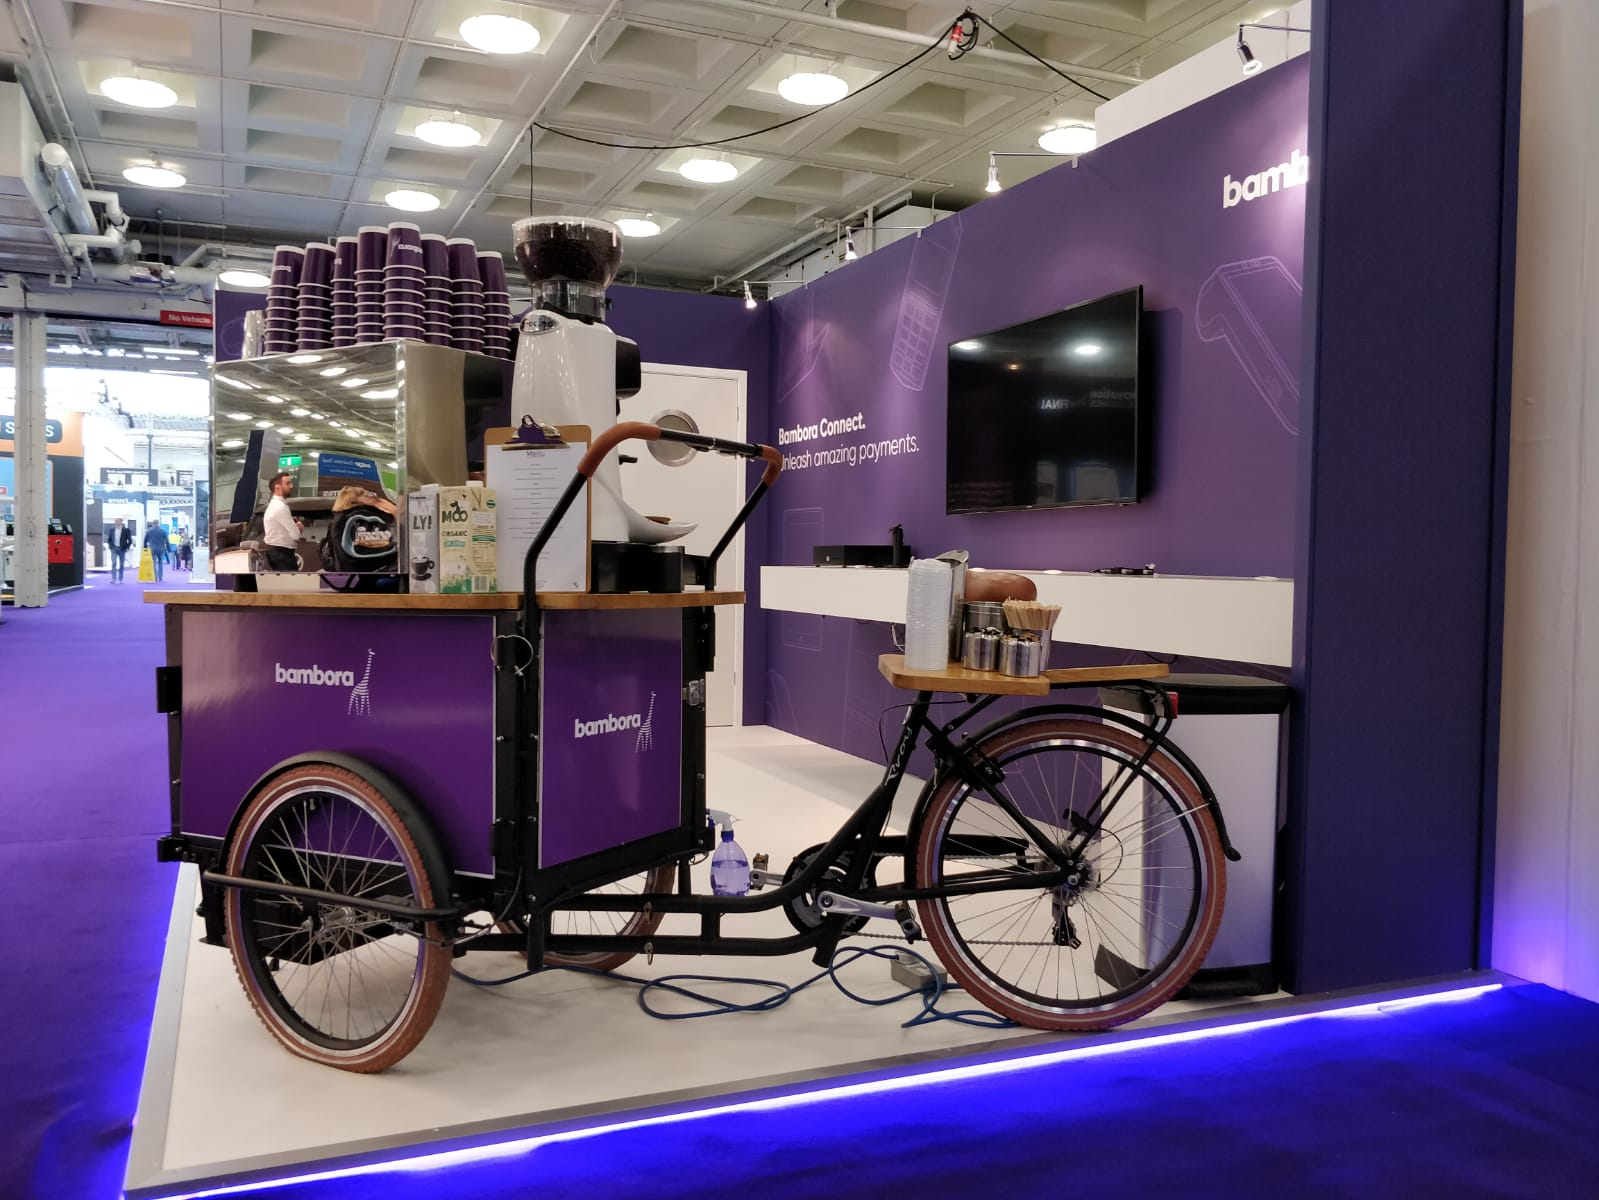 Exhibition coffee setup on one of our bikes